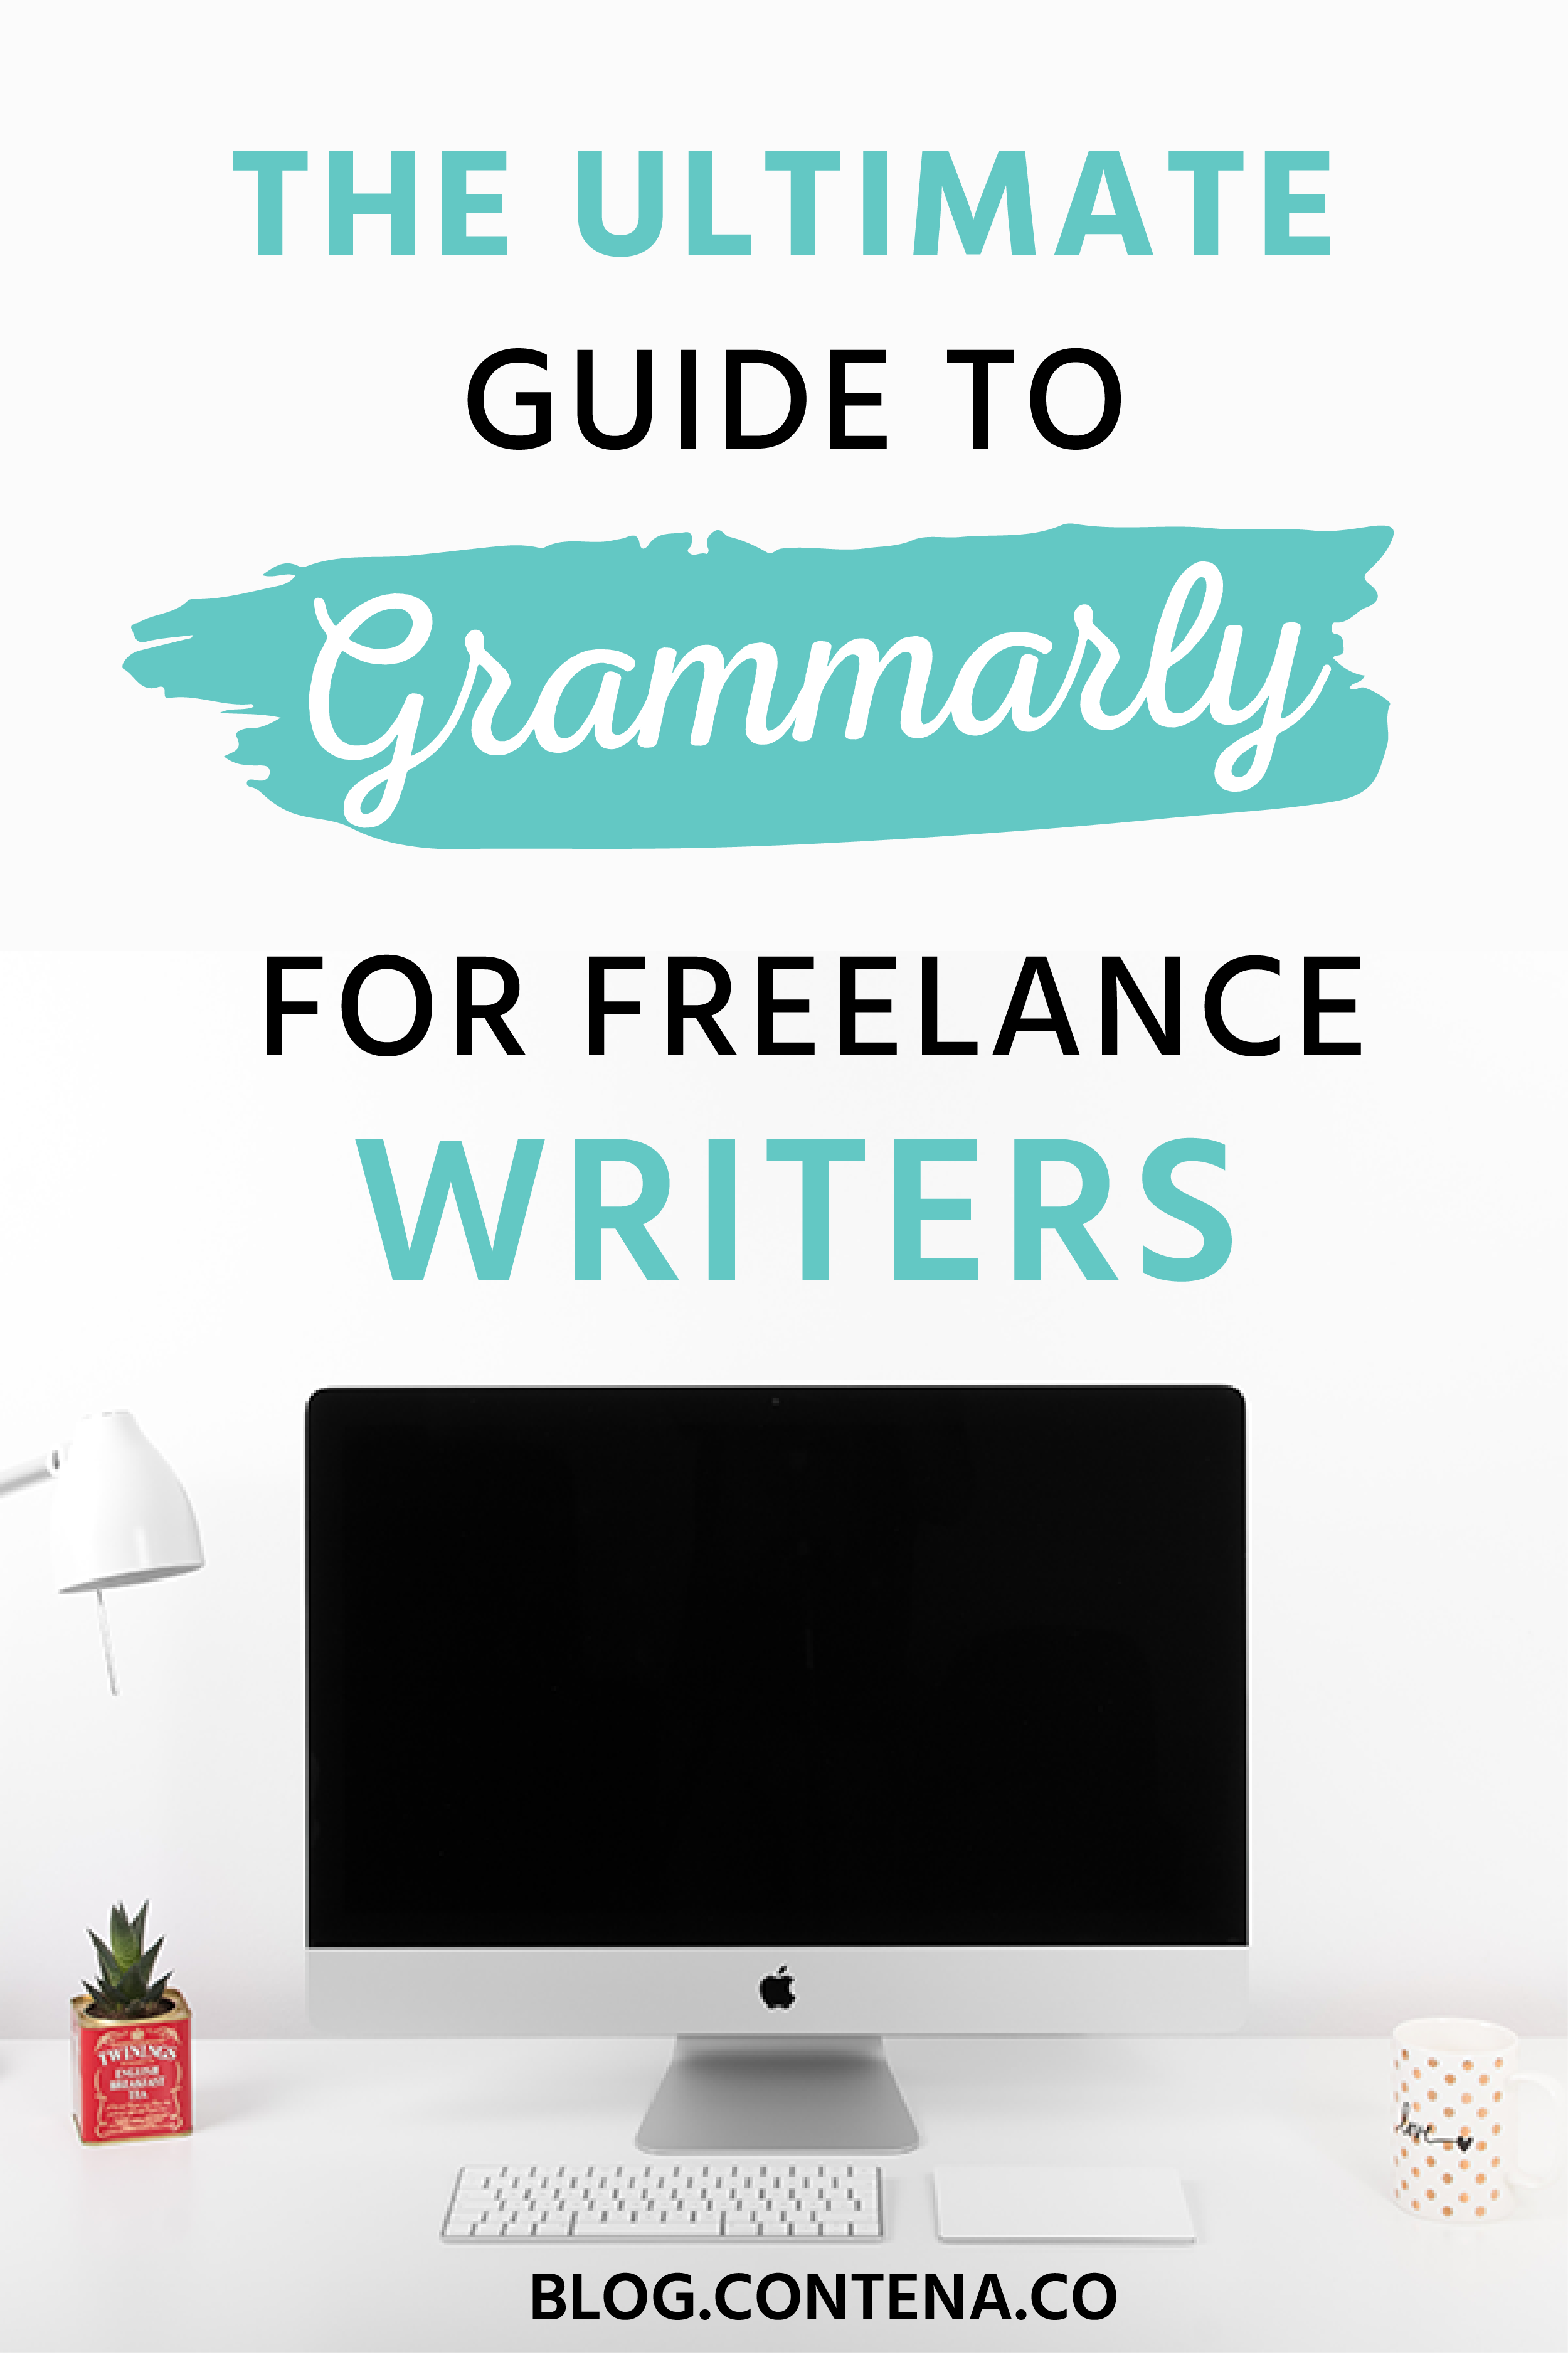 Freelance writers need to be good at writing! If you want to be a better writer, use Grammarly. Here's our review and how to use one of the best free websites and apps for writers. Improve your writing and grammar with these tips for using Grammarly. #FreelanceWriting #OnlineBusiness #Freelancing #WorkFromHome #RemoteWork #Money #FreelanceWriter #Grammarly #BetterWriting #Grammar